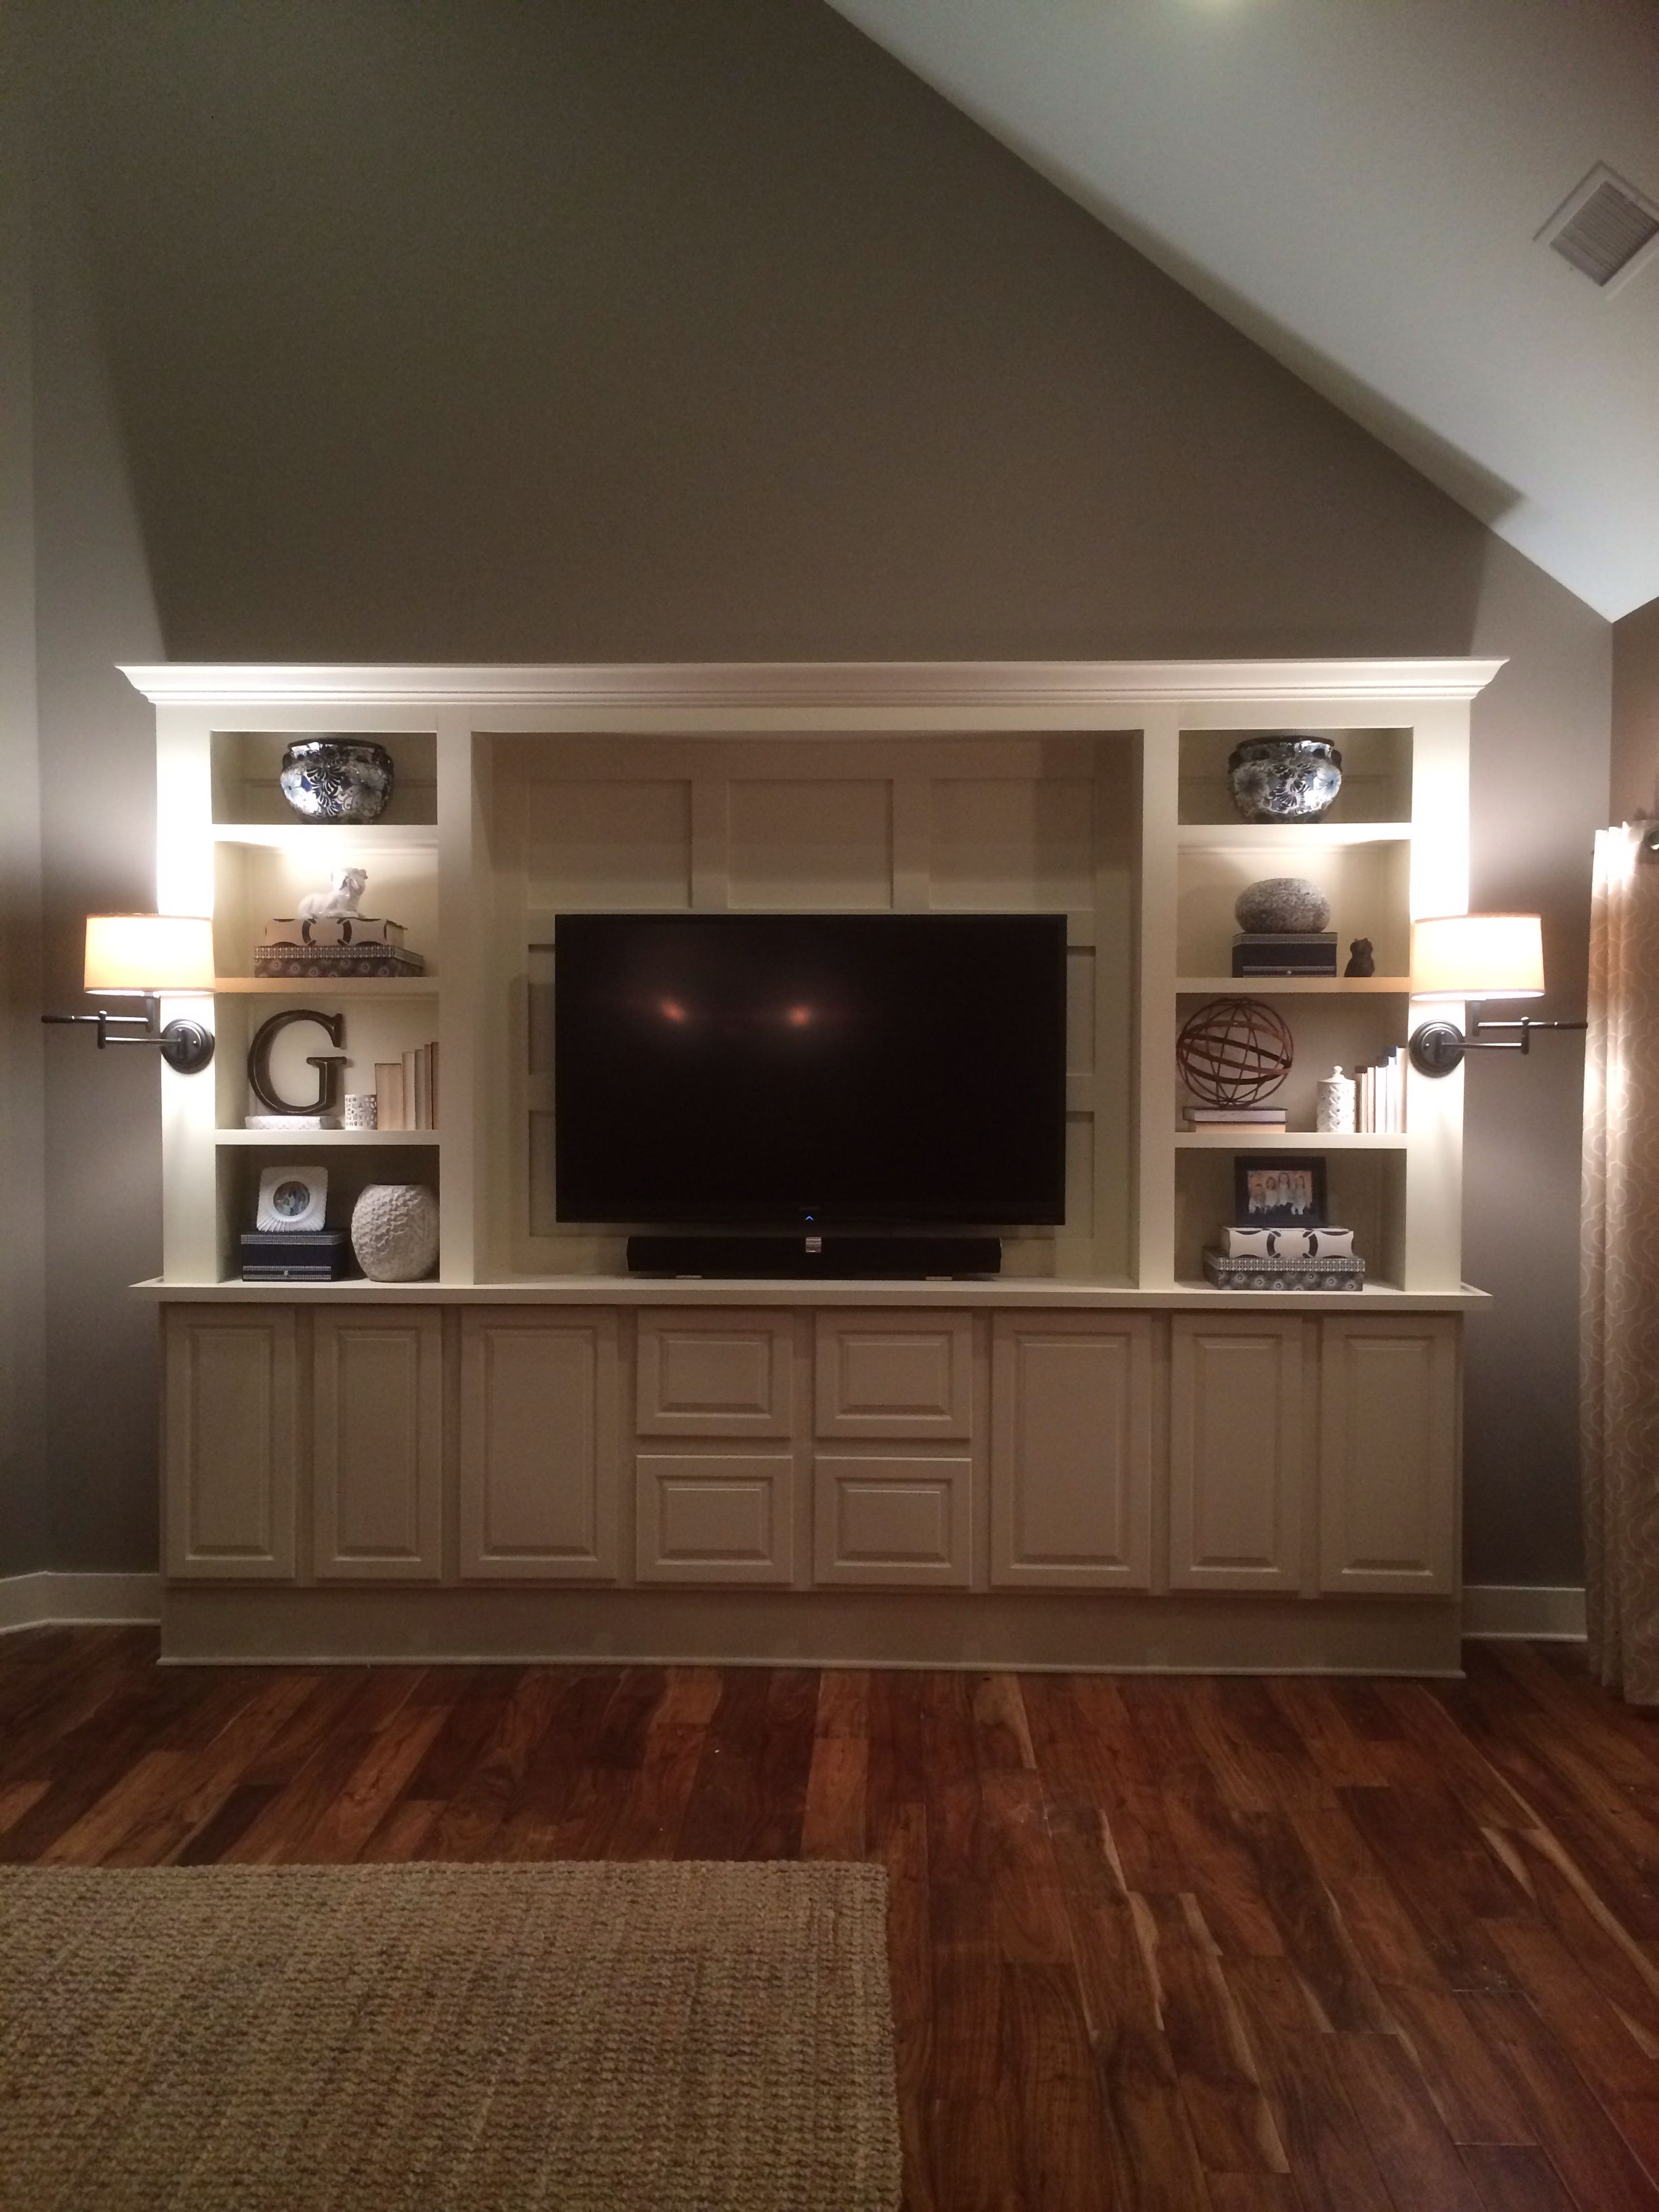 Diy entertainment center with sconce lighting living room entertainment center entertainment wall units